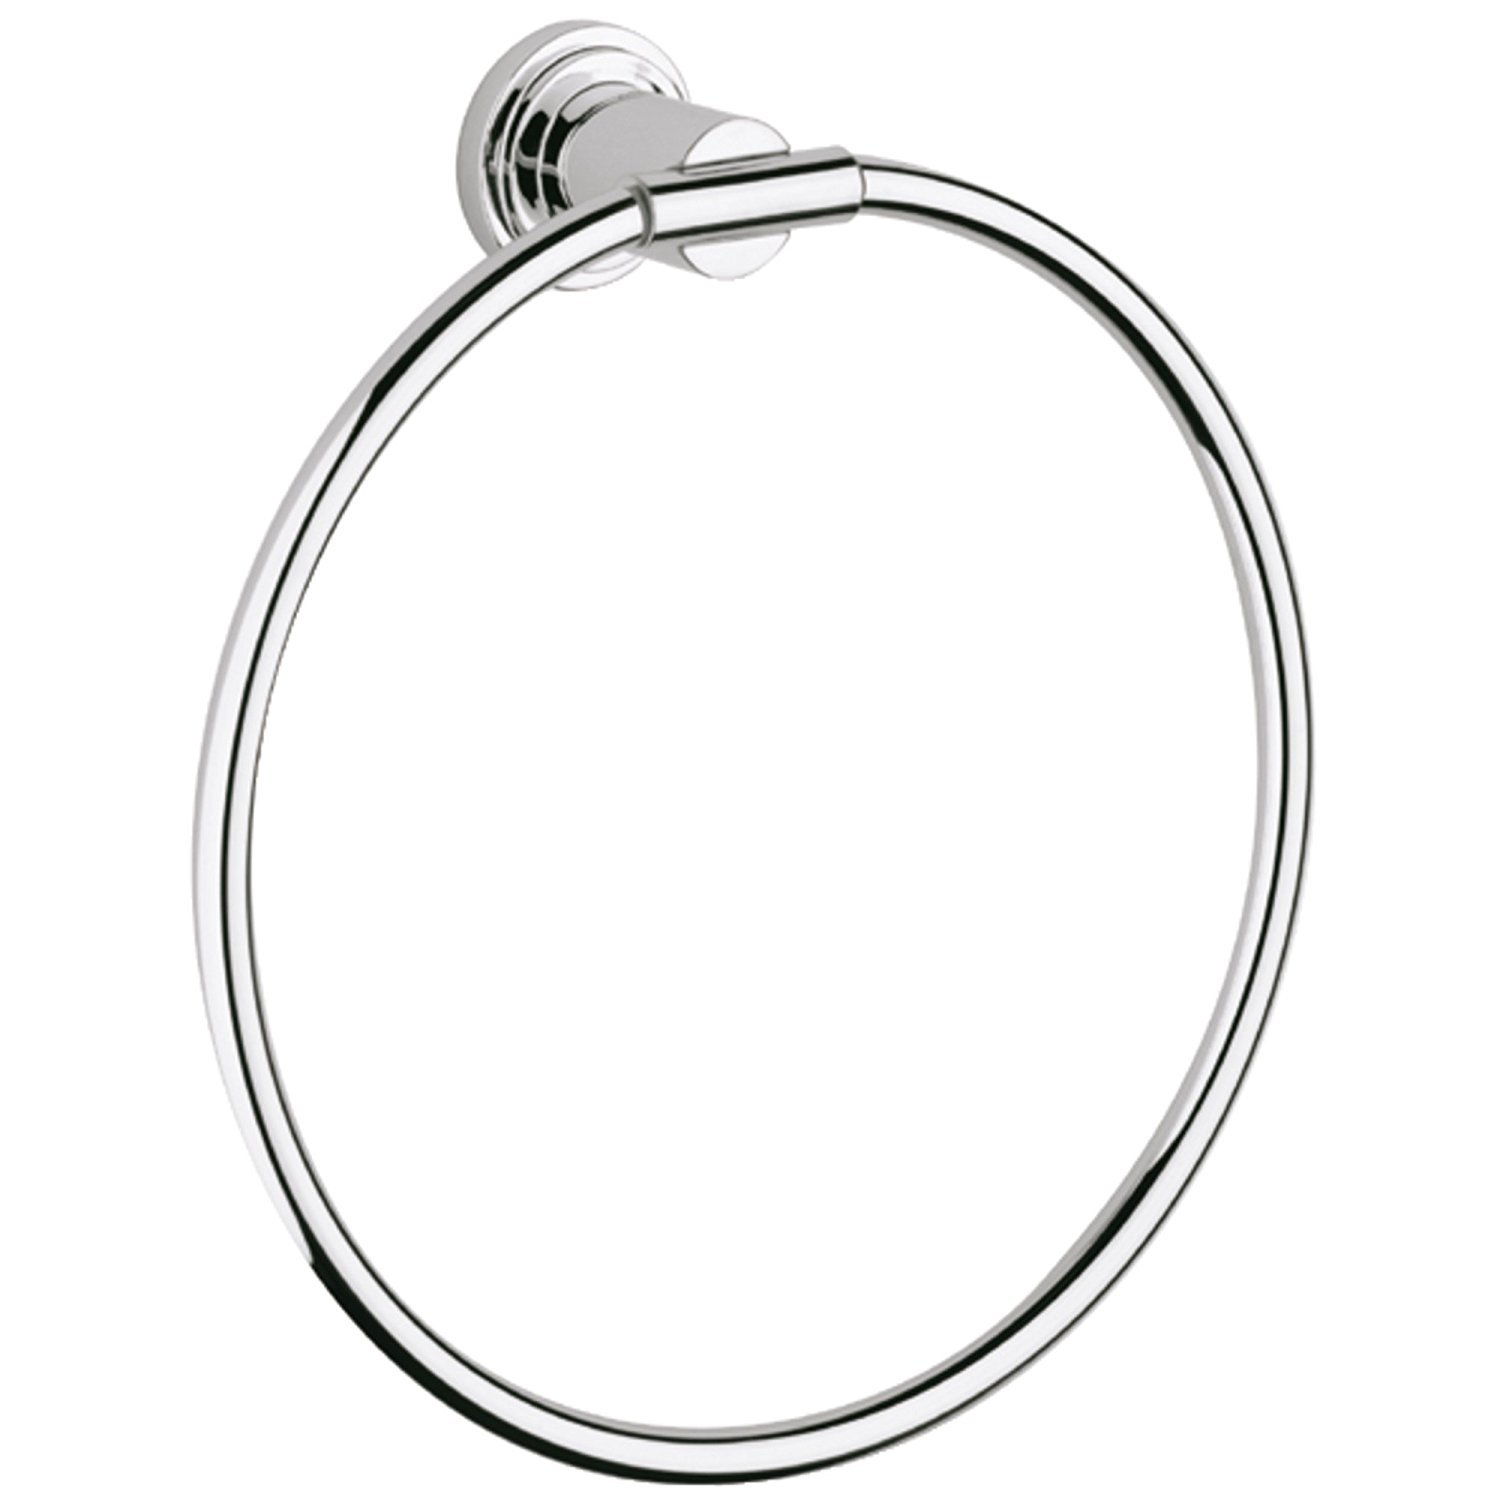 Atrio 8 In. Towel Ring